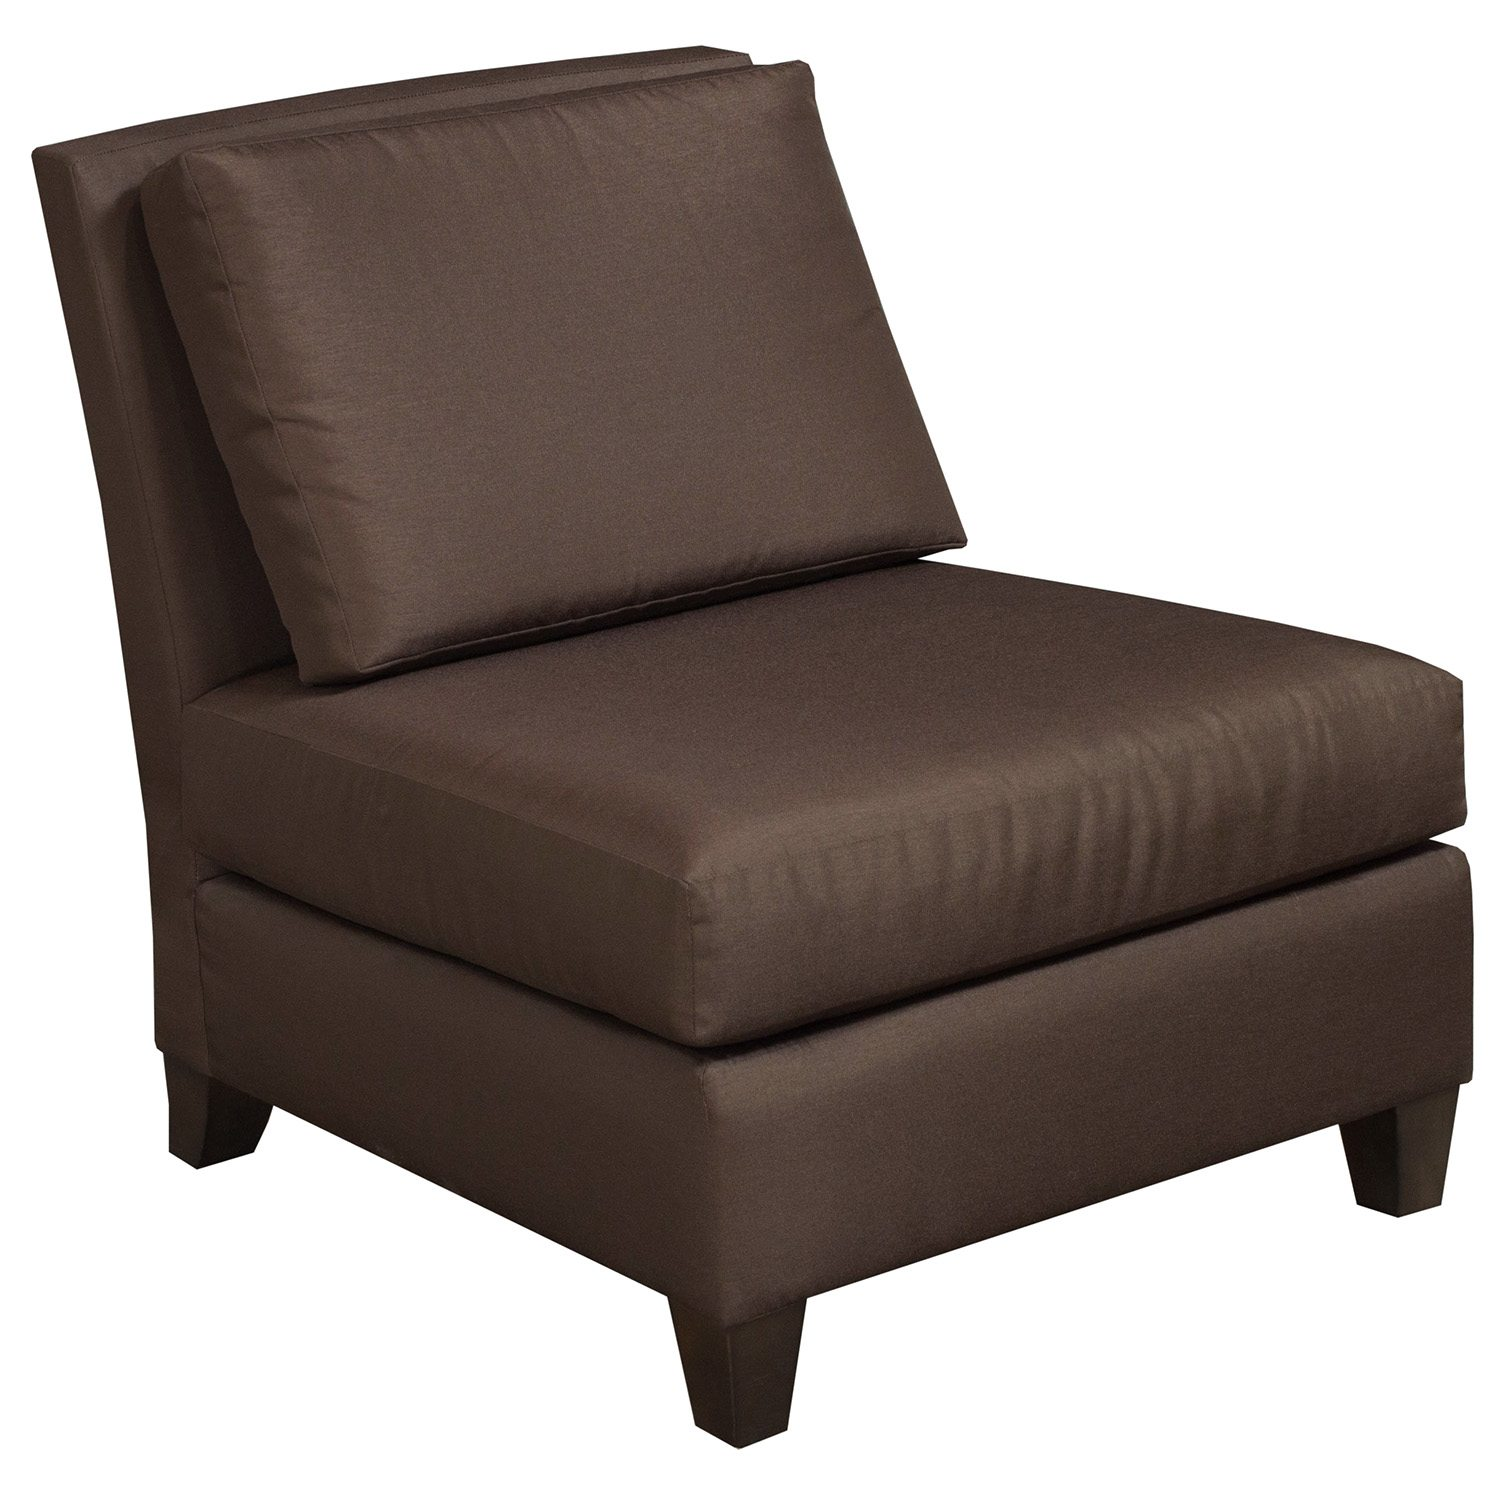 Martin Brattrud Used Lounge Chair Armless Brown